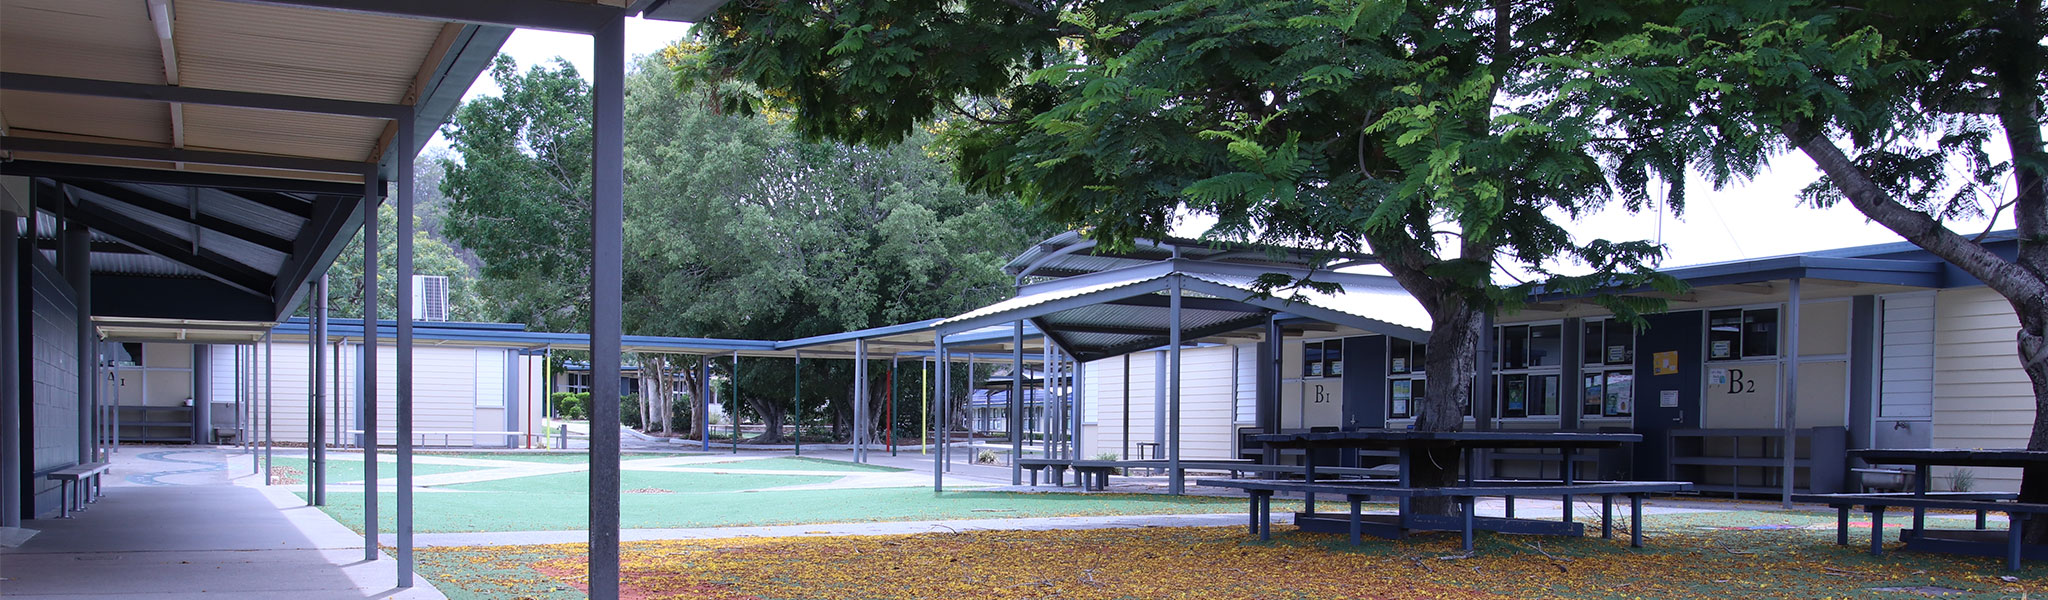 Windaroo State School campus